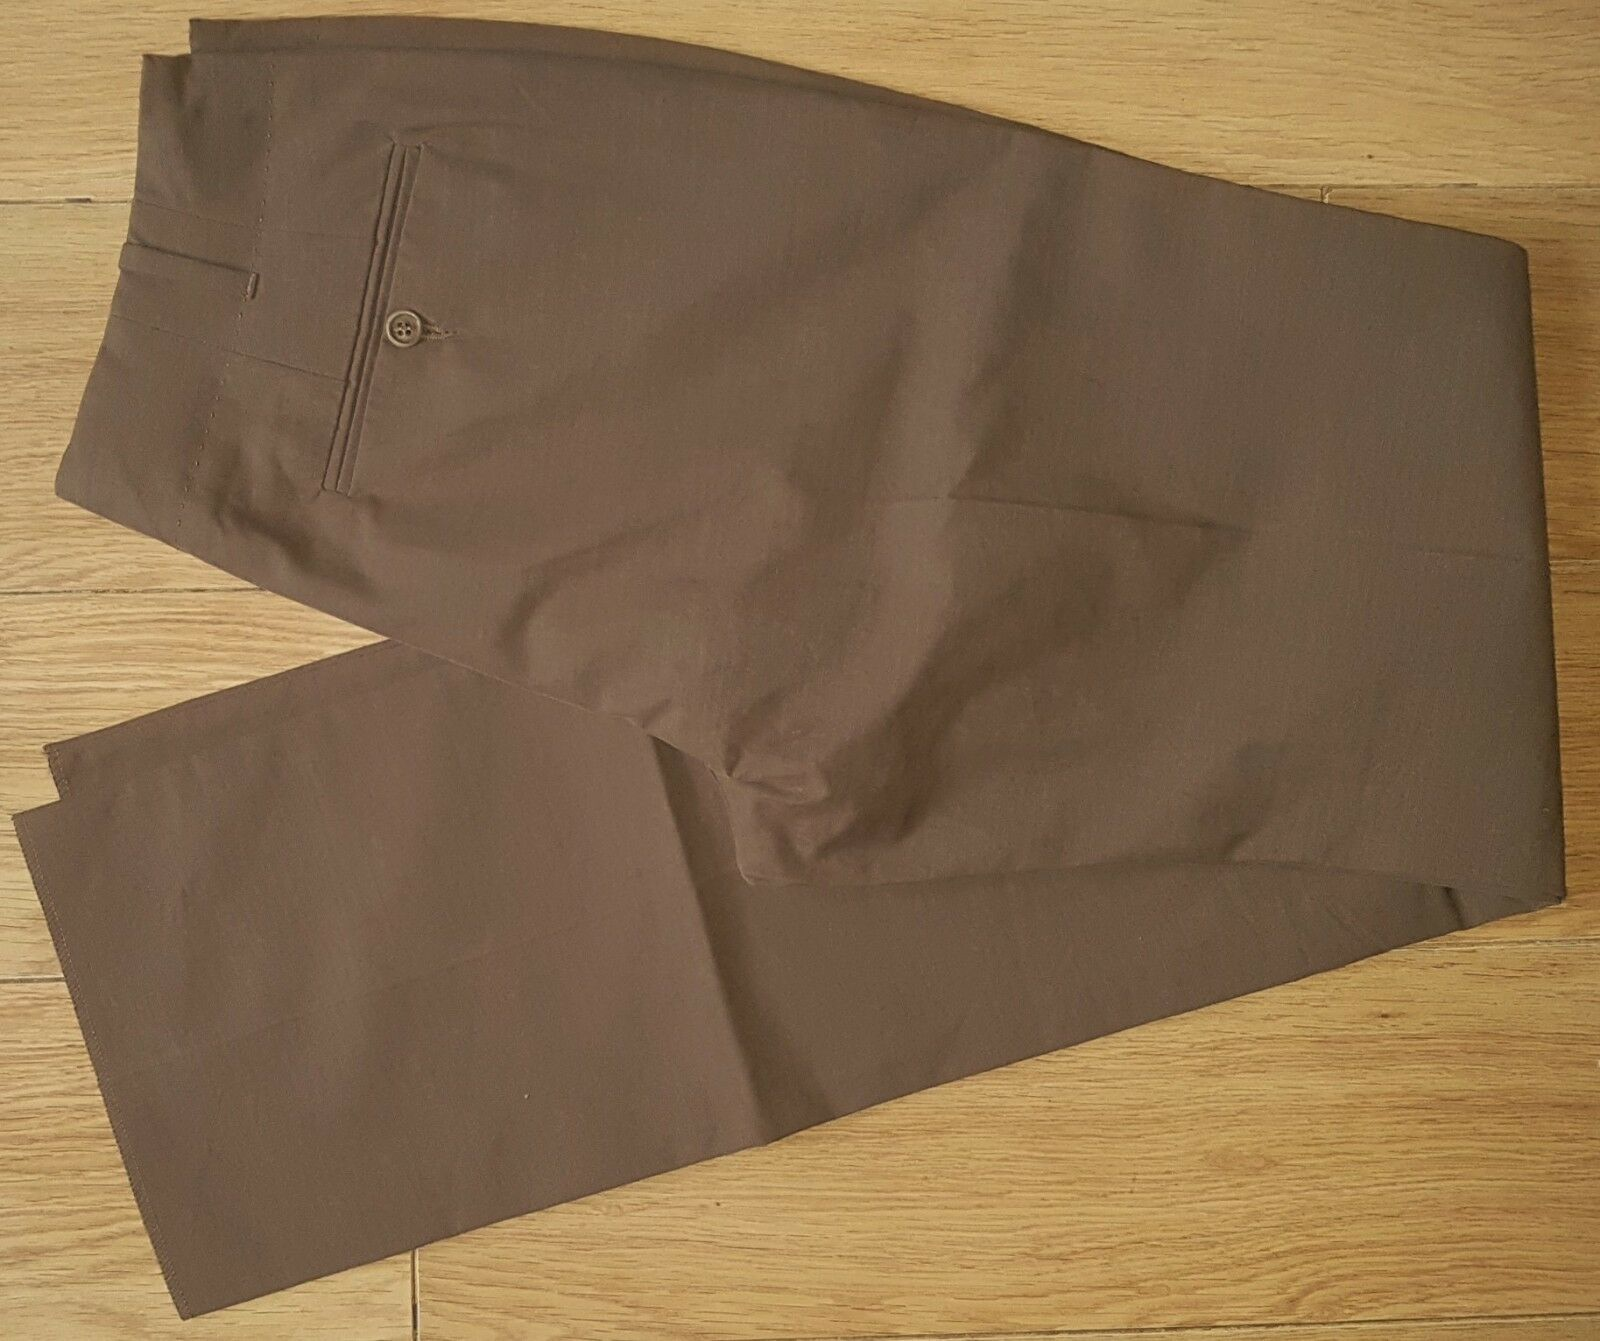 PS PAUL SMITH TROUSERS SIZE 30  X 36   BRAND NEW